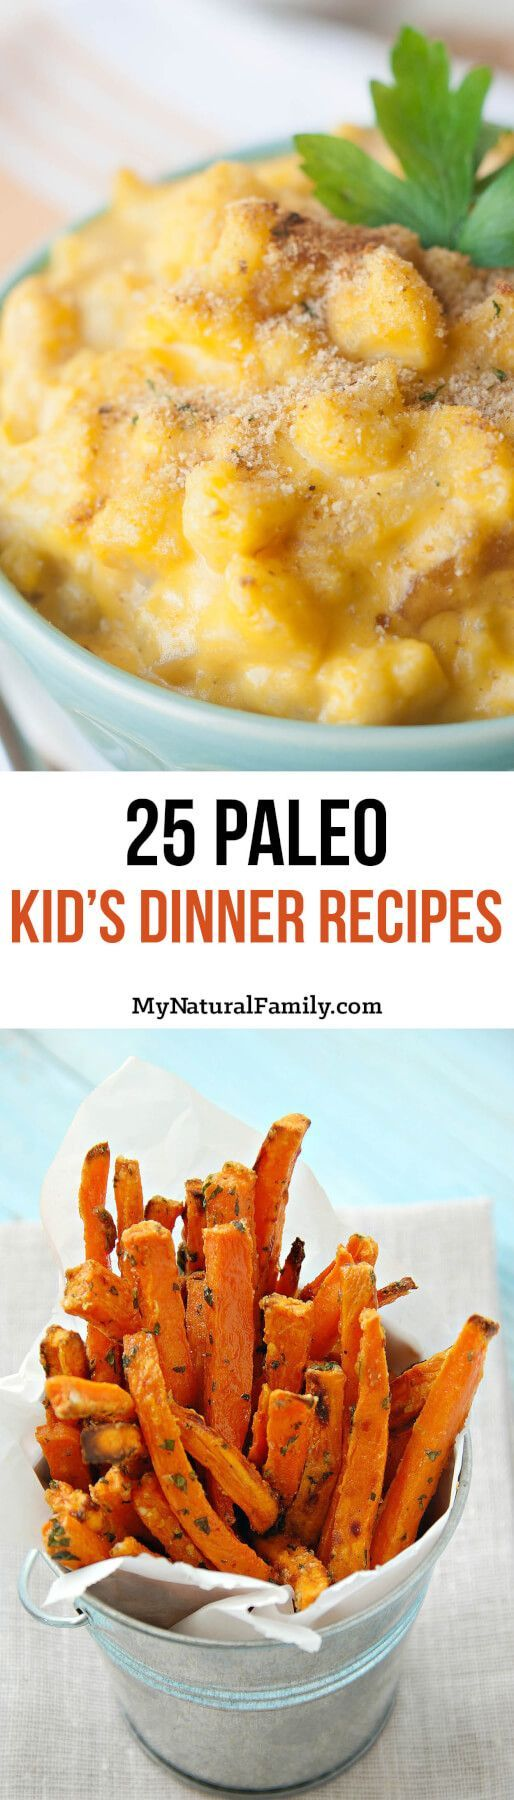 25 Paleo Kids Dinner Recipes